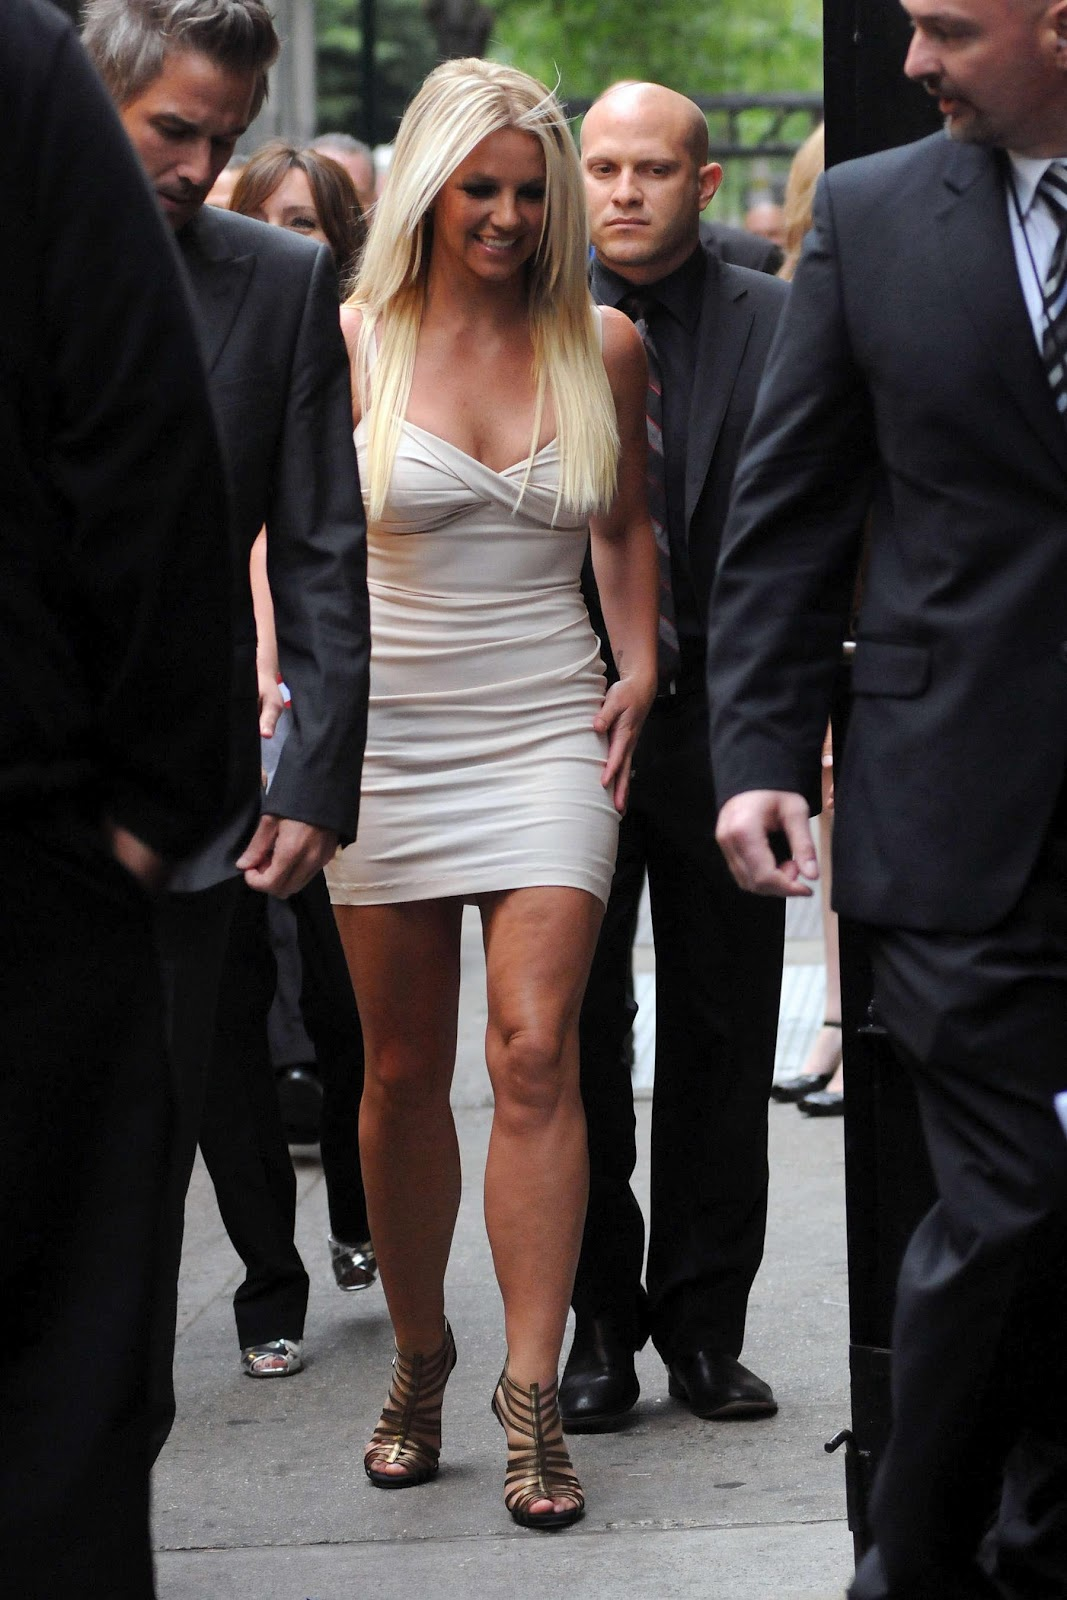 Britney spears looking very very hot in white dress